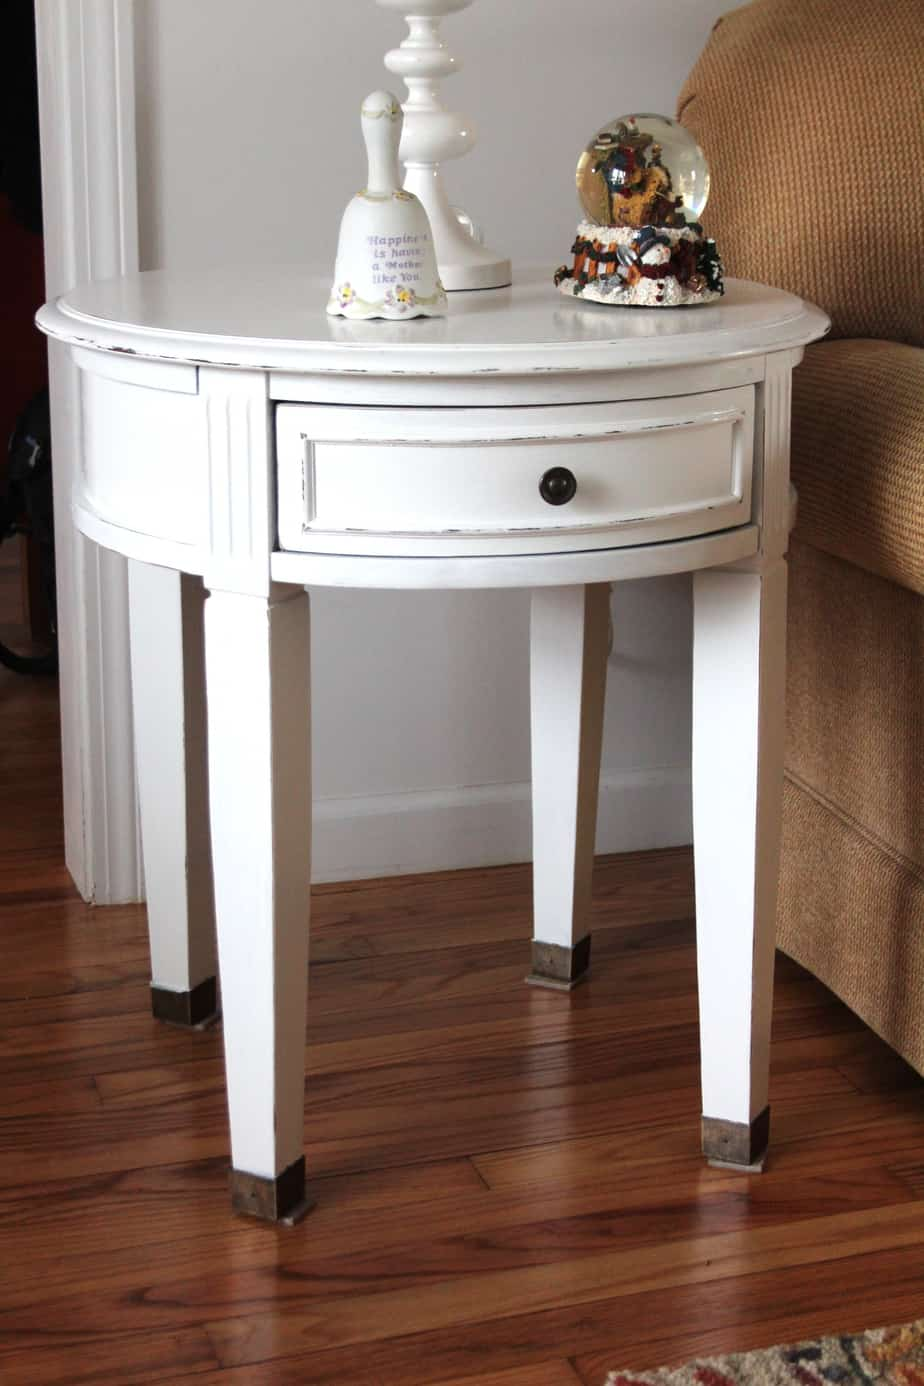 A Fresh Start For Outdated Furniture (And A Family!)